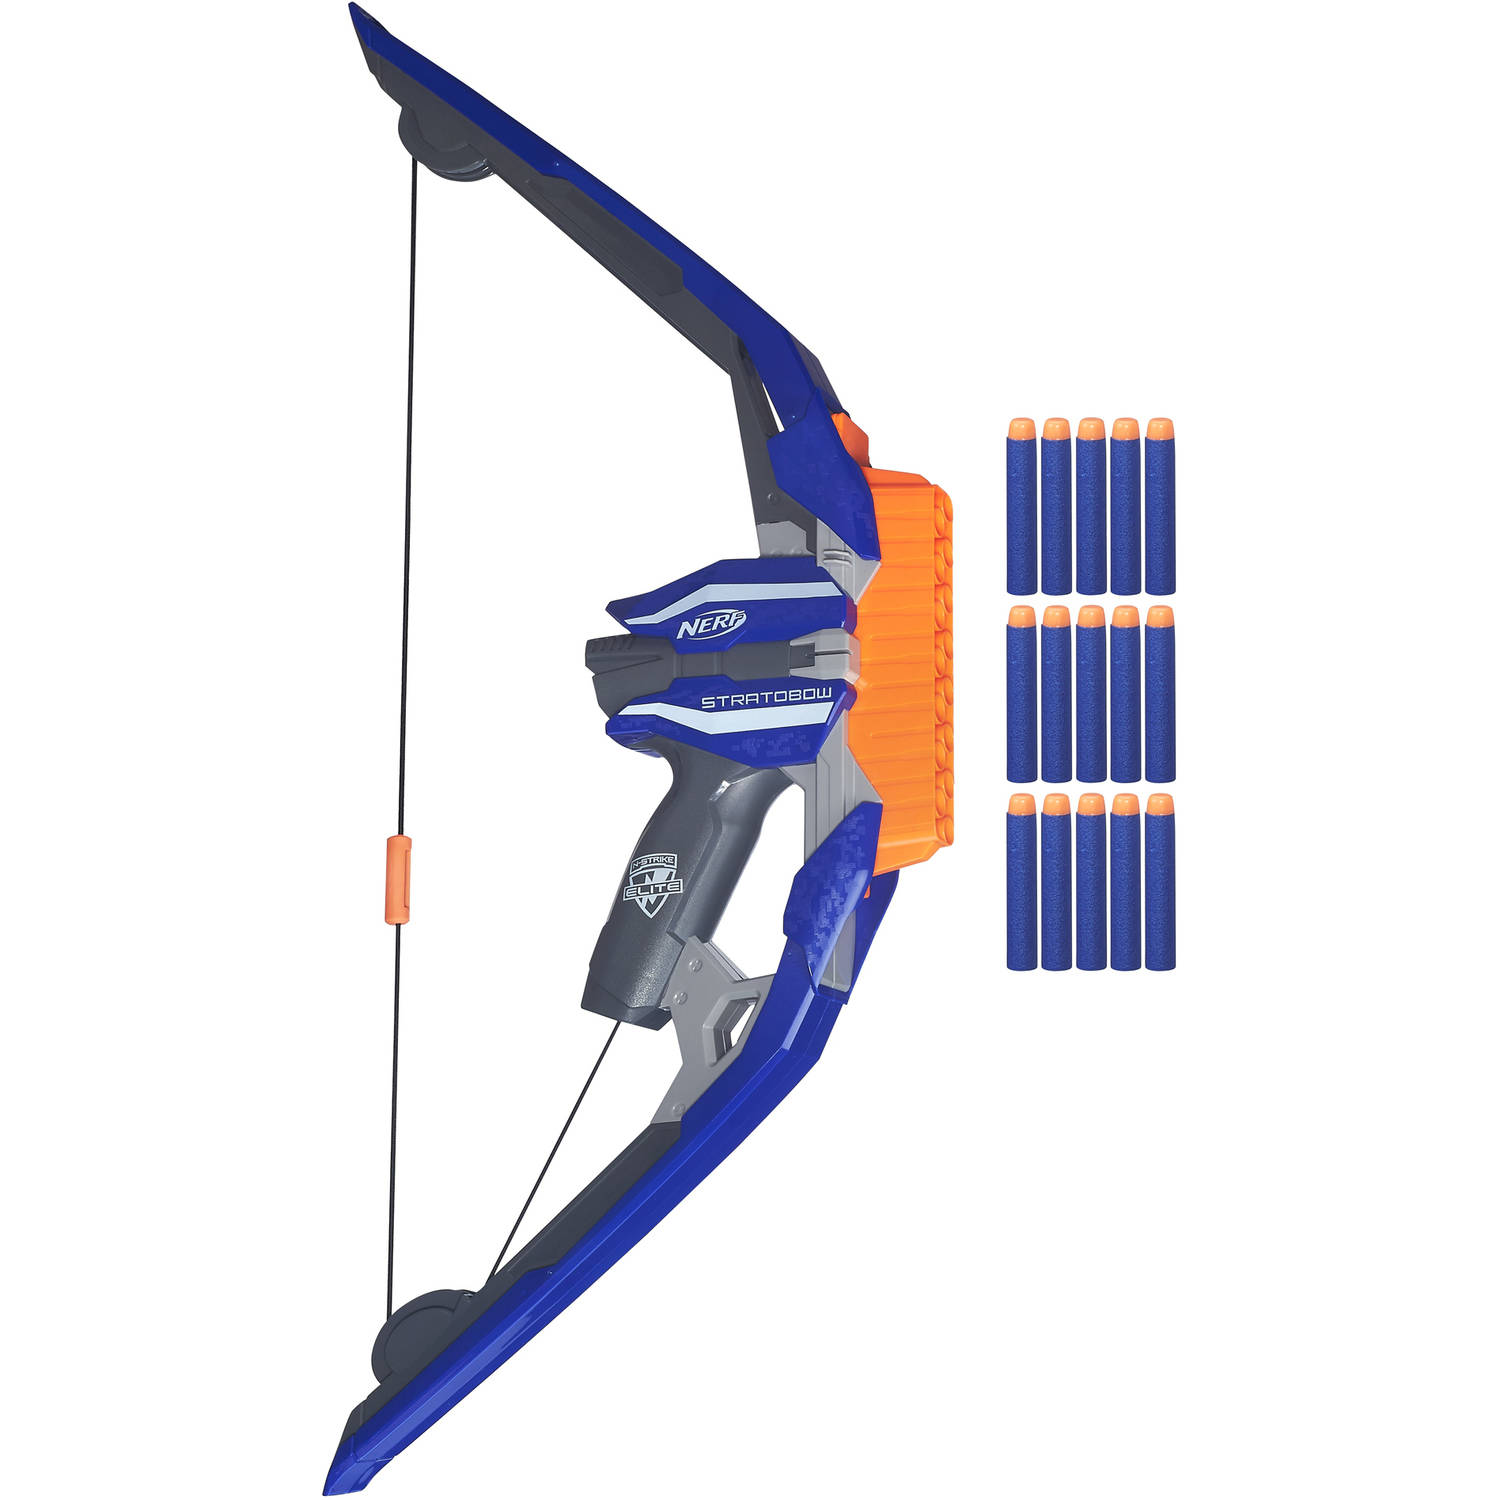 Nerf N-Strike StratoBow Bow by EVERFRONT PLASTIC & ELECTRONICS MANUFACTURING CO., LTD.